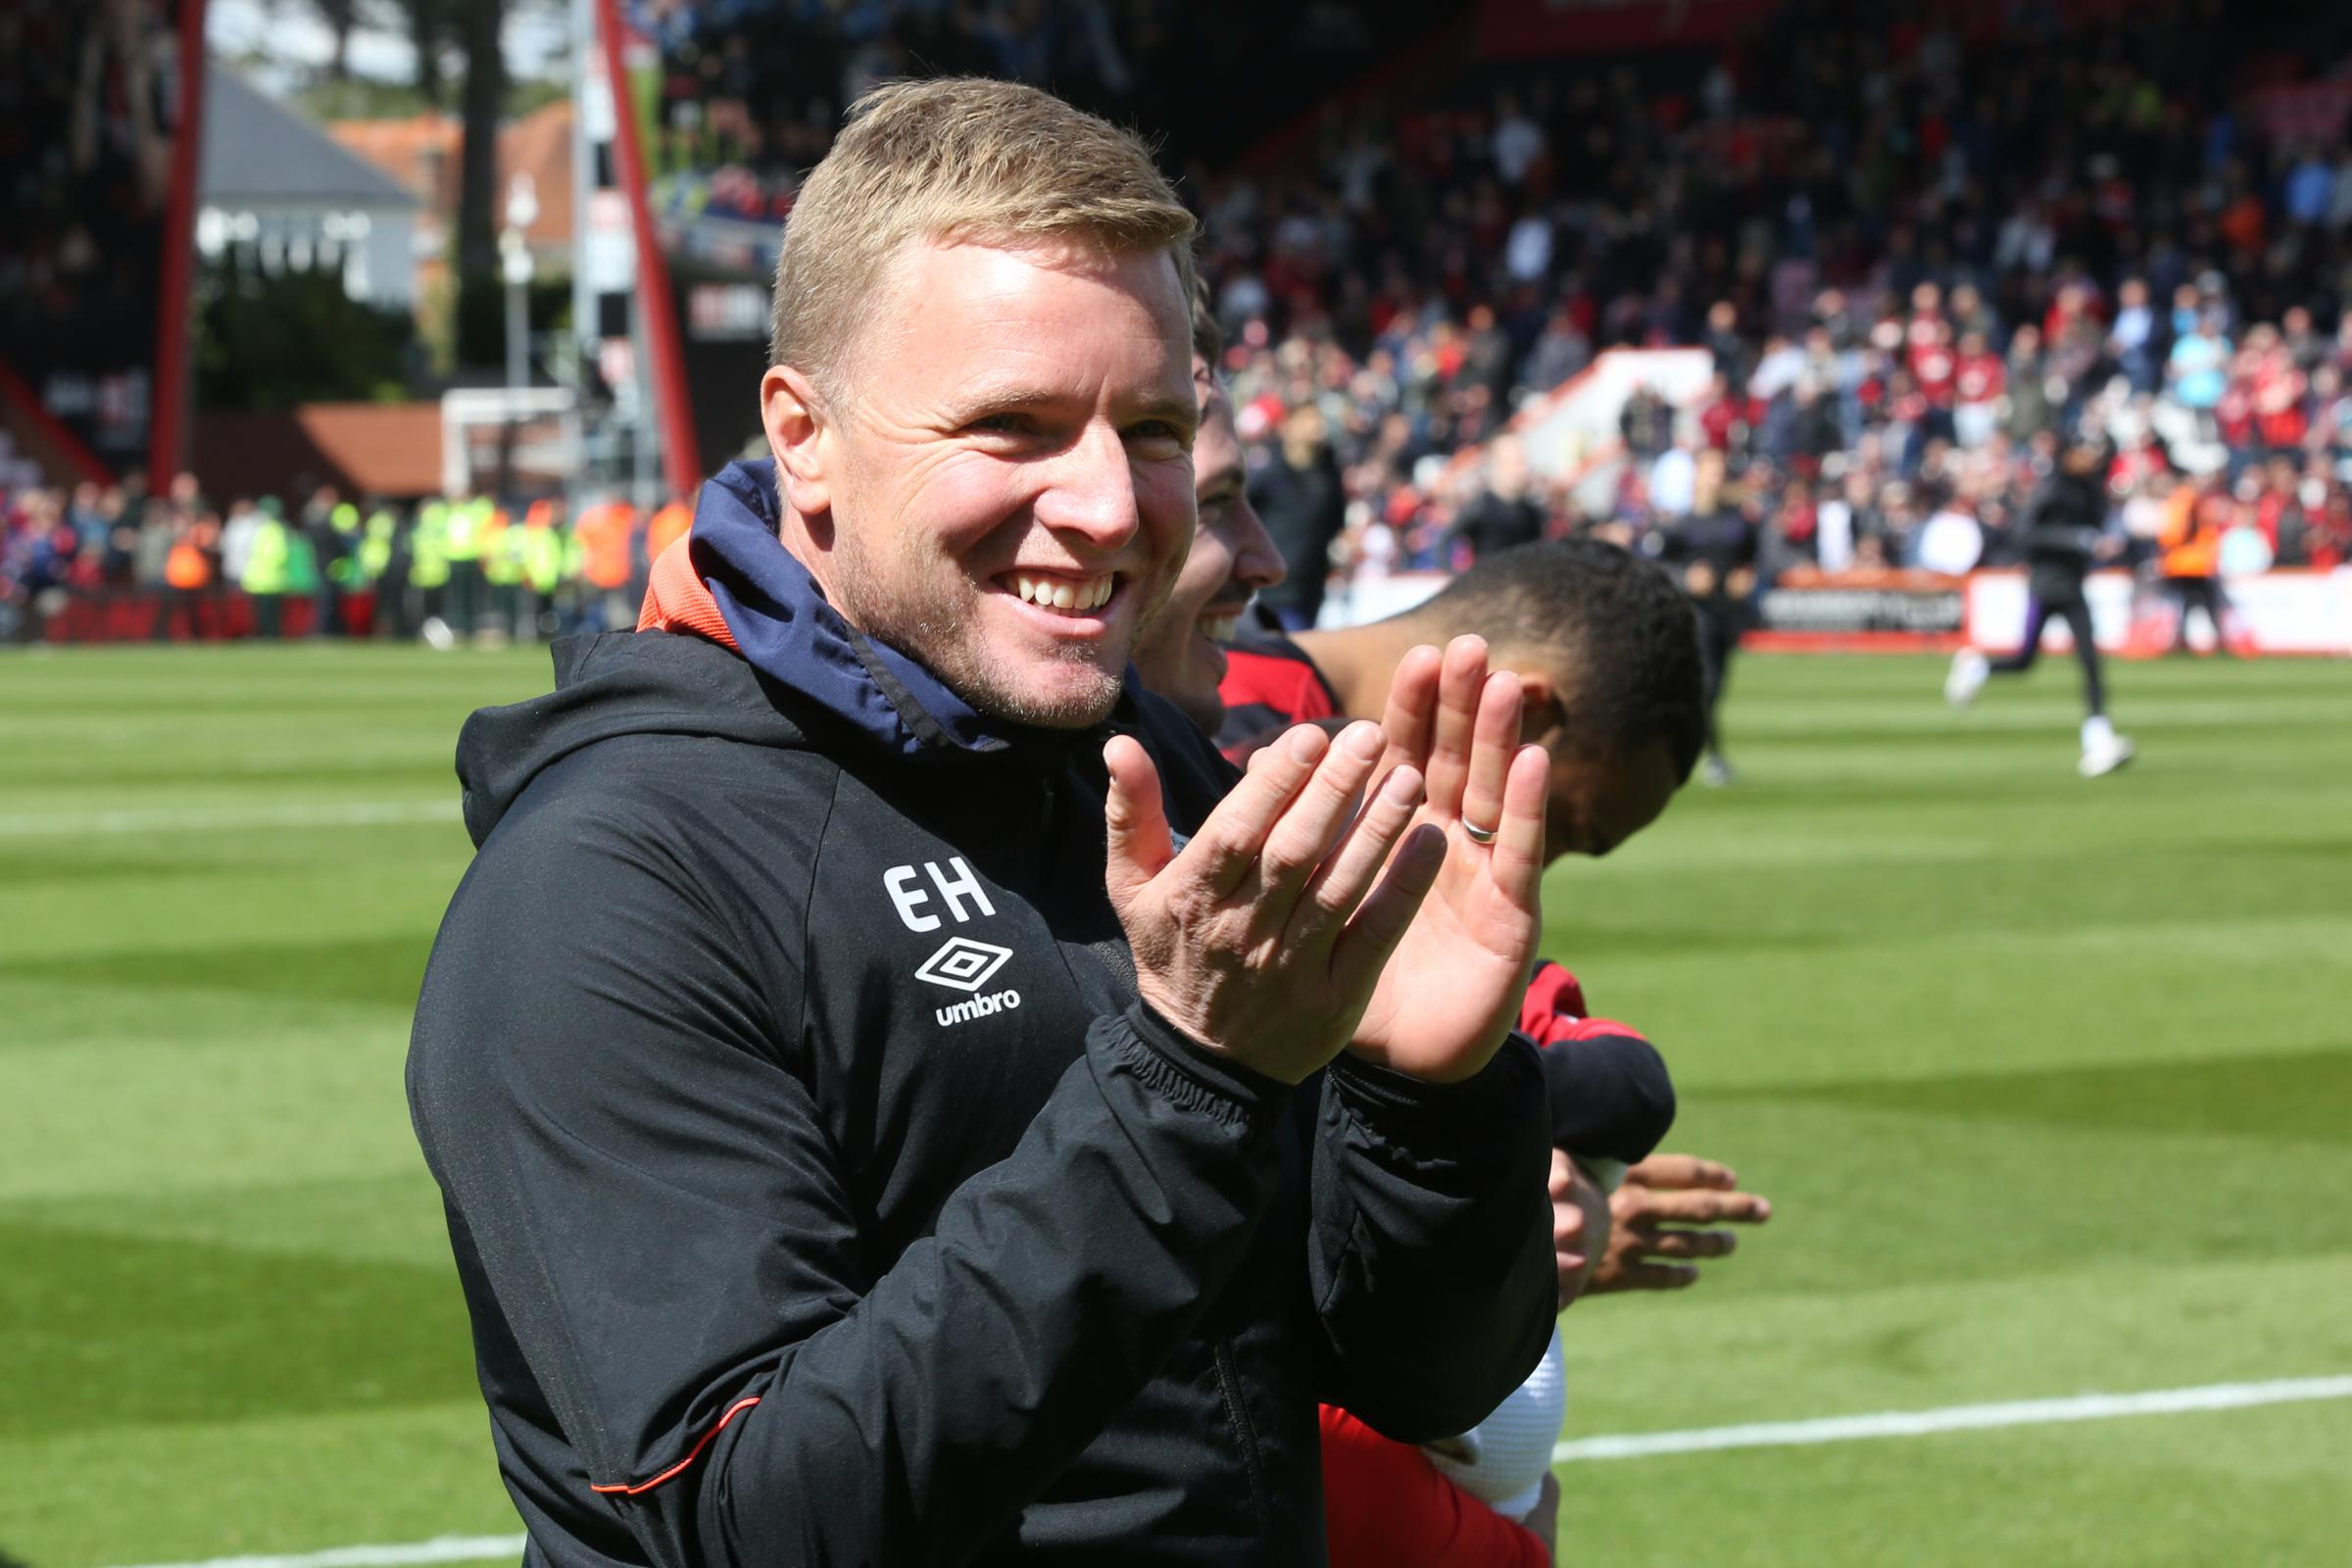 AFC Bournemouth v Tottenham Hotspur at Vitality Stadium. Eddie Howe leads the team on a lap of honour after the game ..